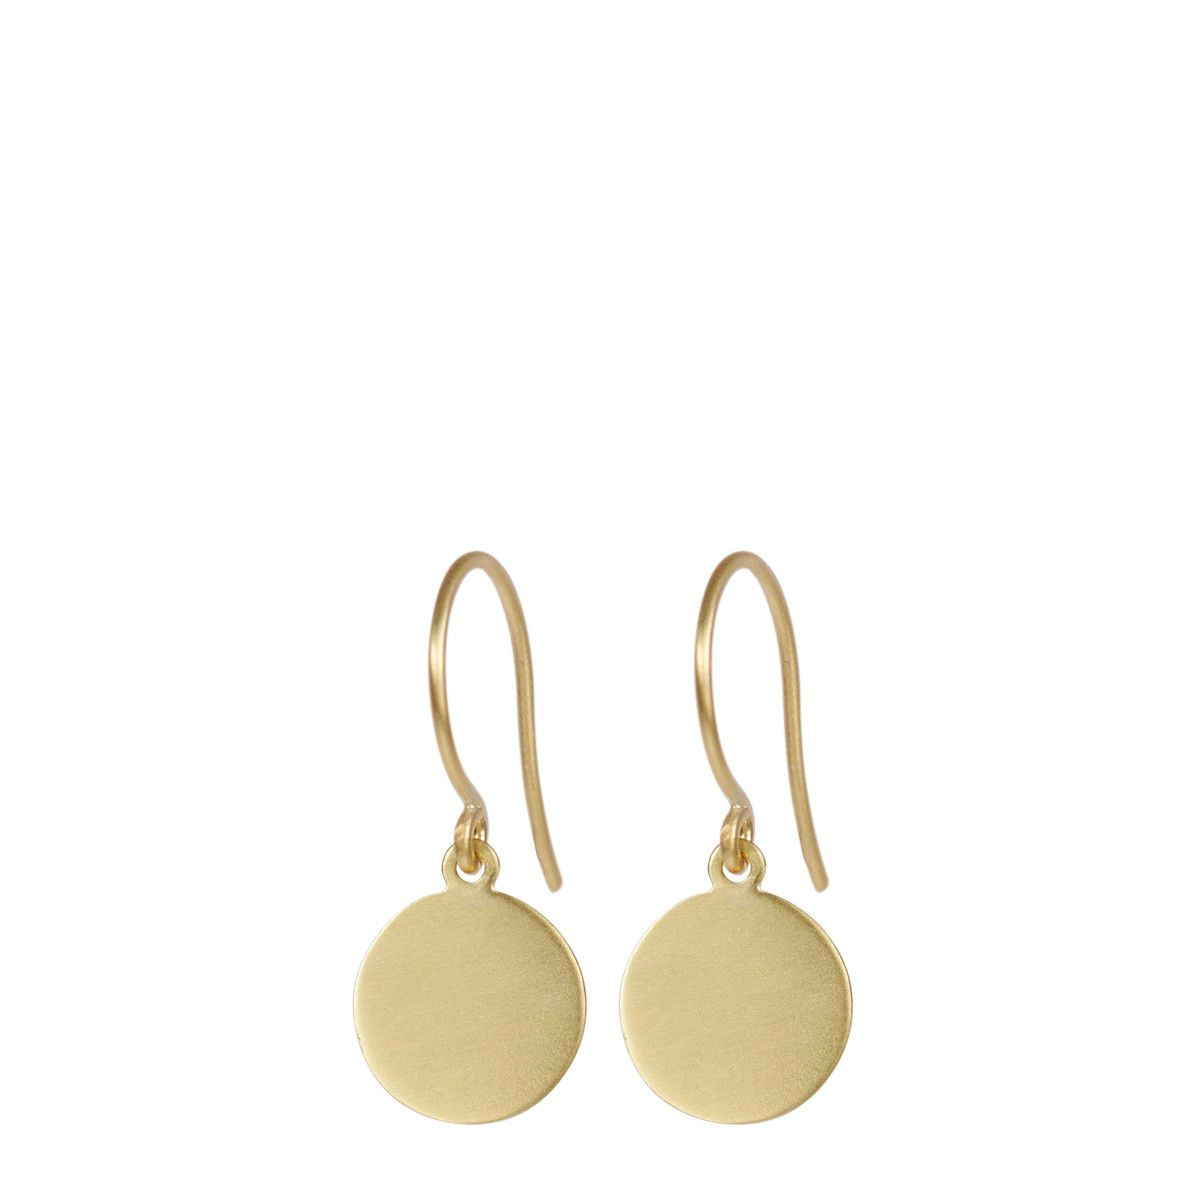 These timeless recycled 18K gold disc earrings highlight the beauty of simplicity, shimmering with a subtle matte finish while dangling delicately from your ear